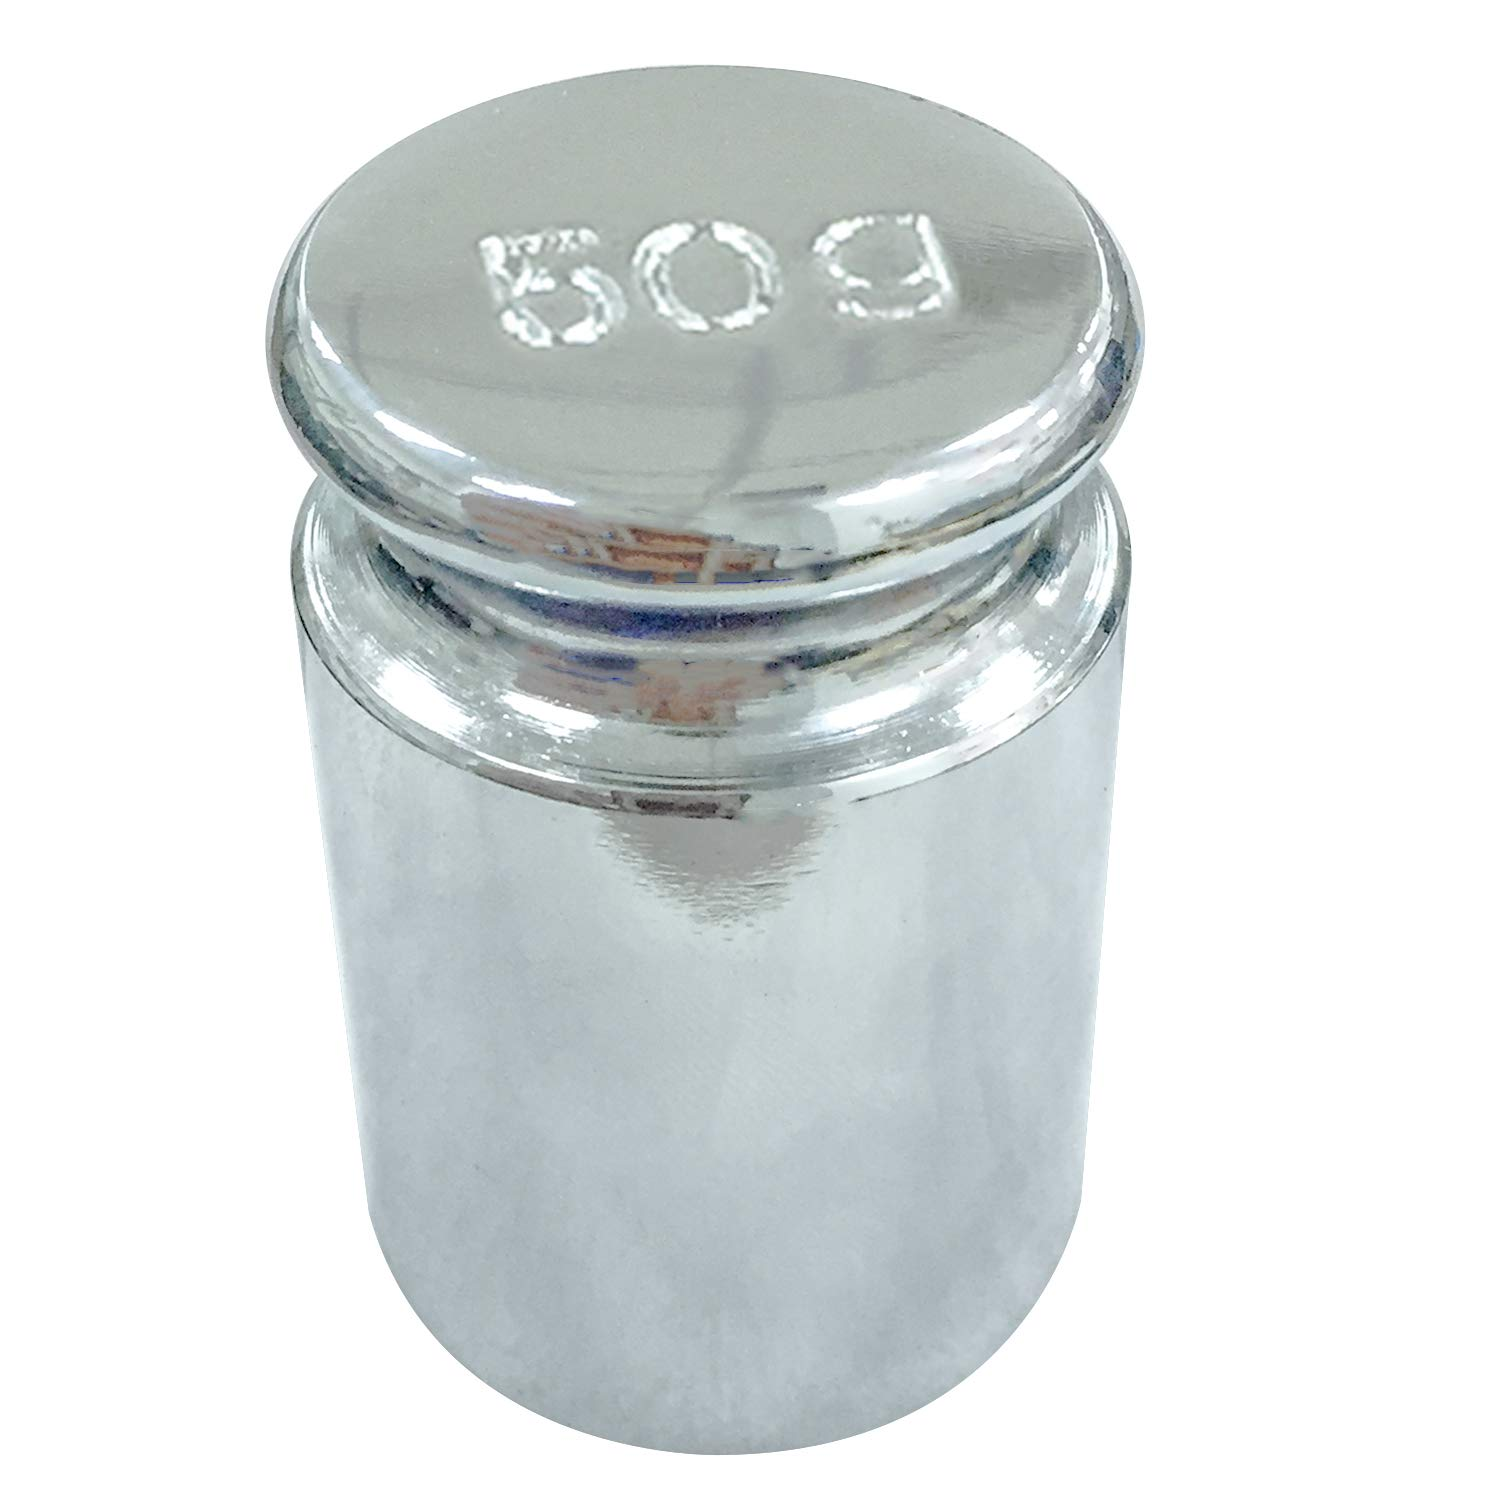 HFS(R) Chrome Scale Calibration Weight (50G)